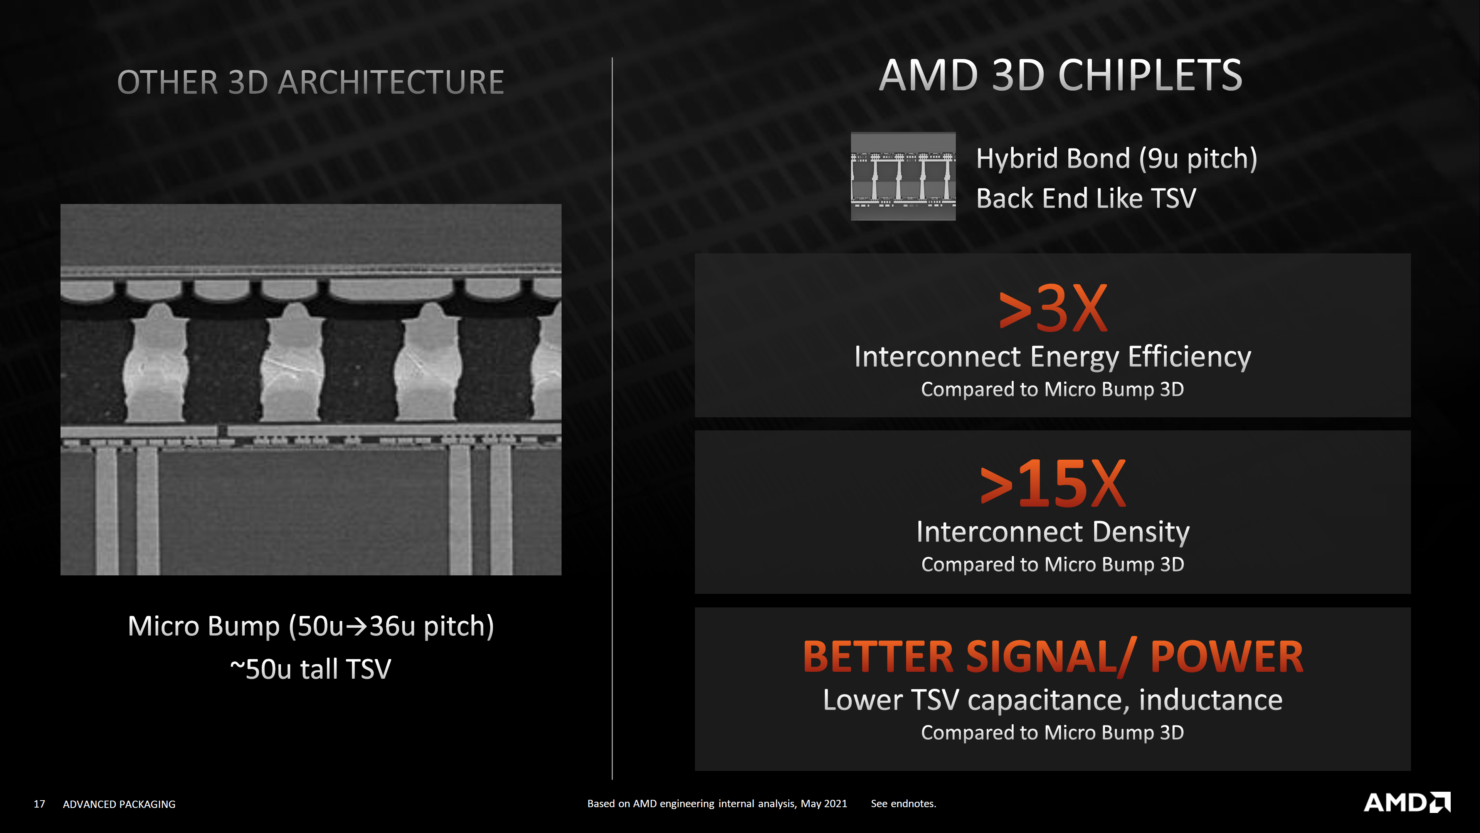 amd-advanced-3d-chiplet-packaging-3d-stacking-technologies-3d-v-cache-_16